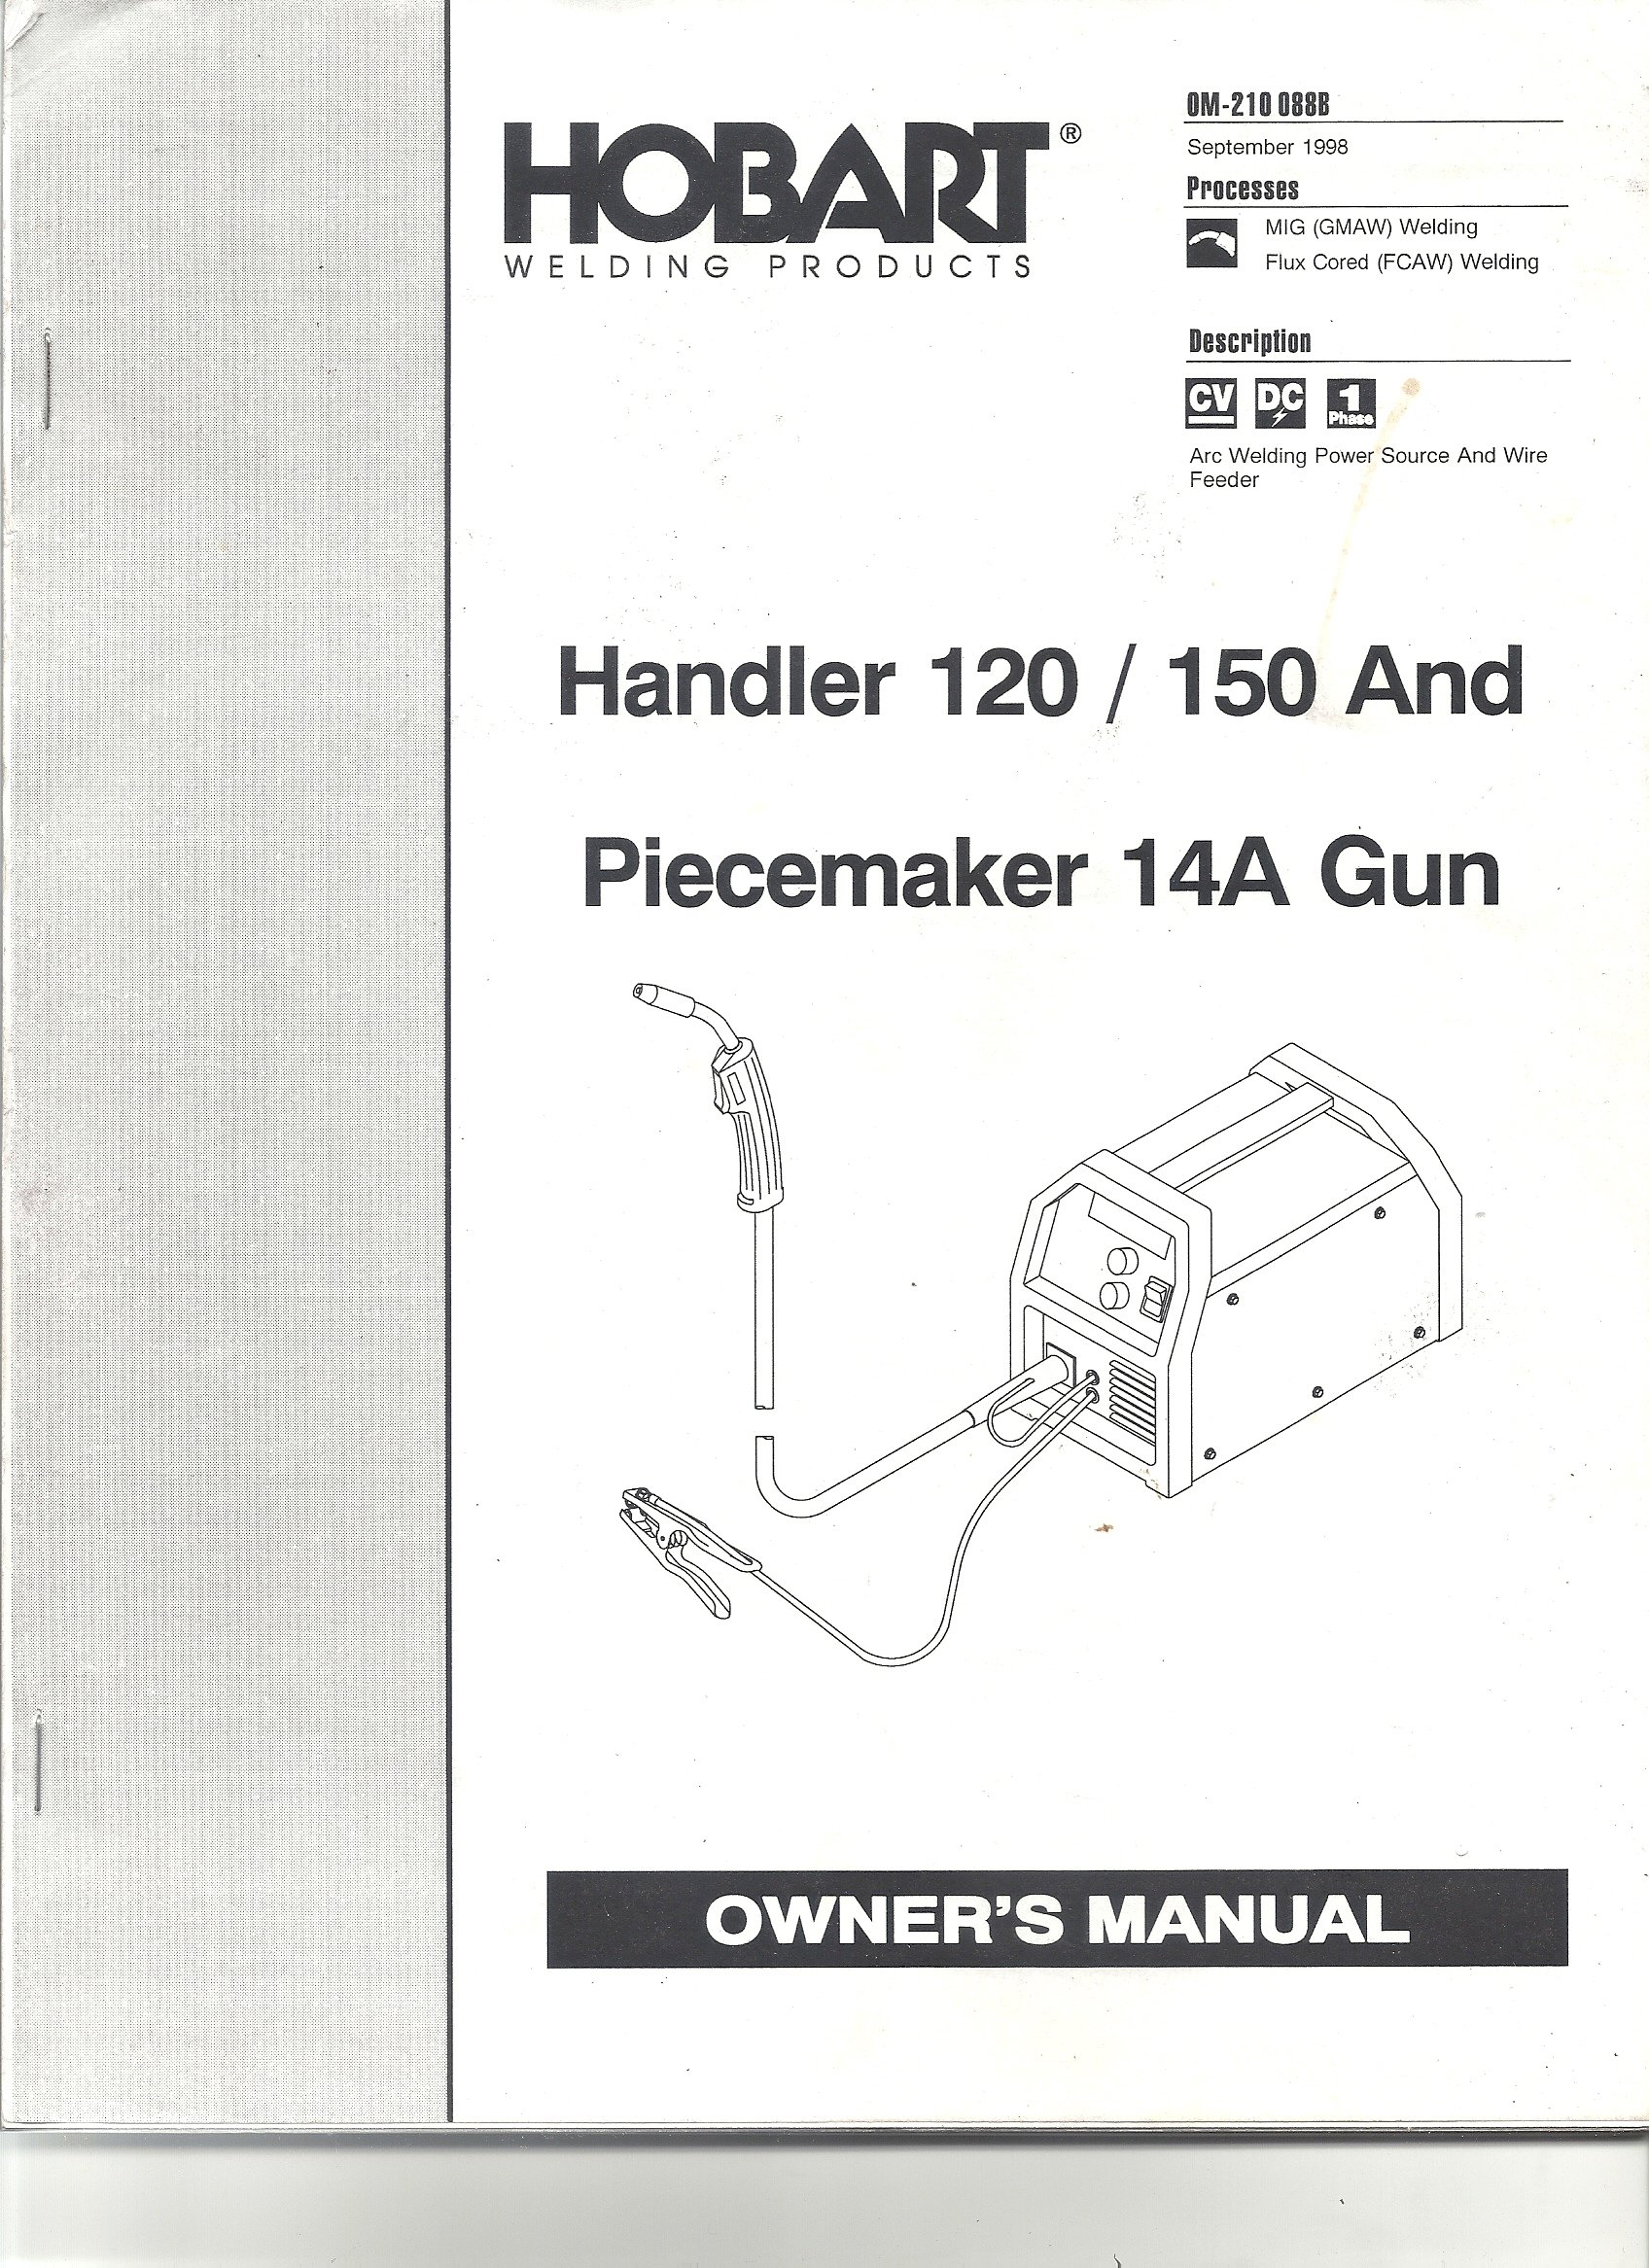 Hobart Welding Products - Handler 120/150 and Piecemaker 14A Gun ...